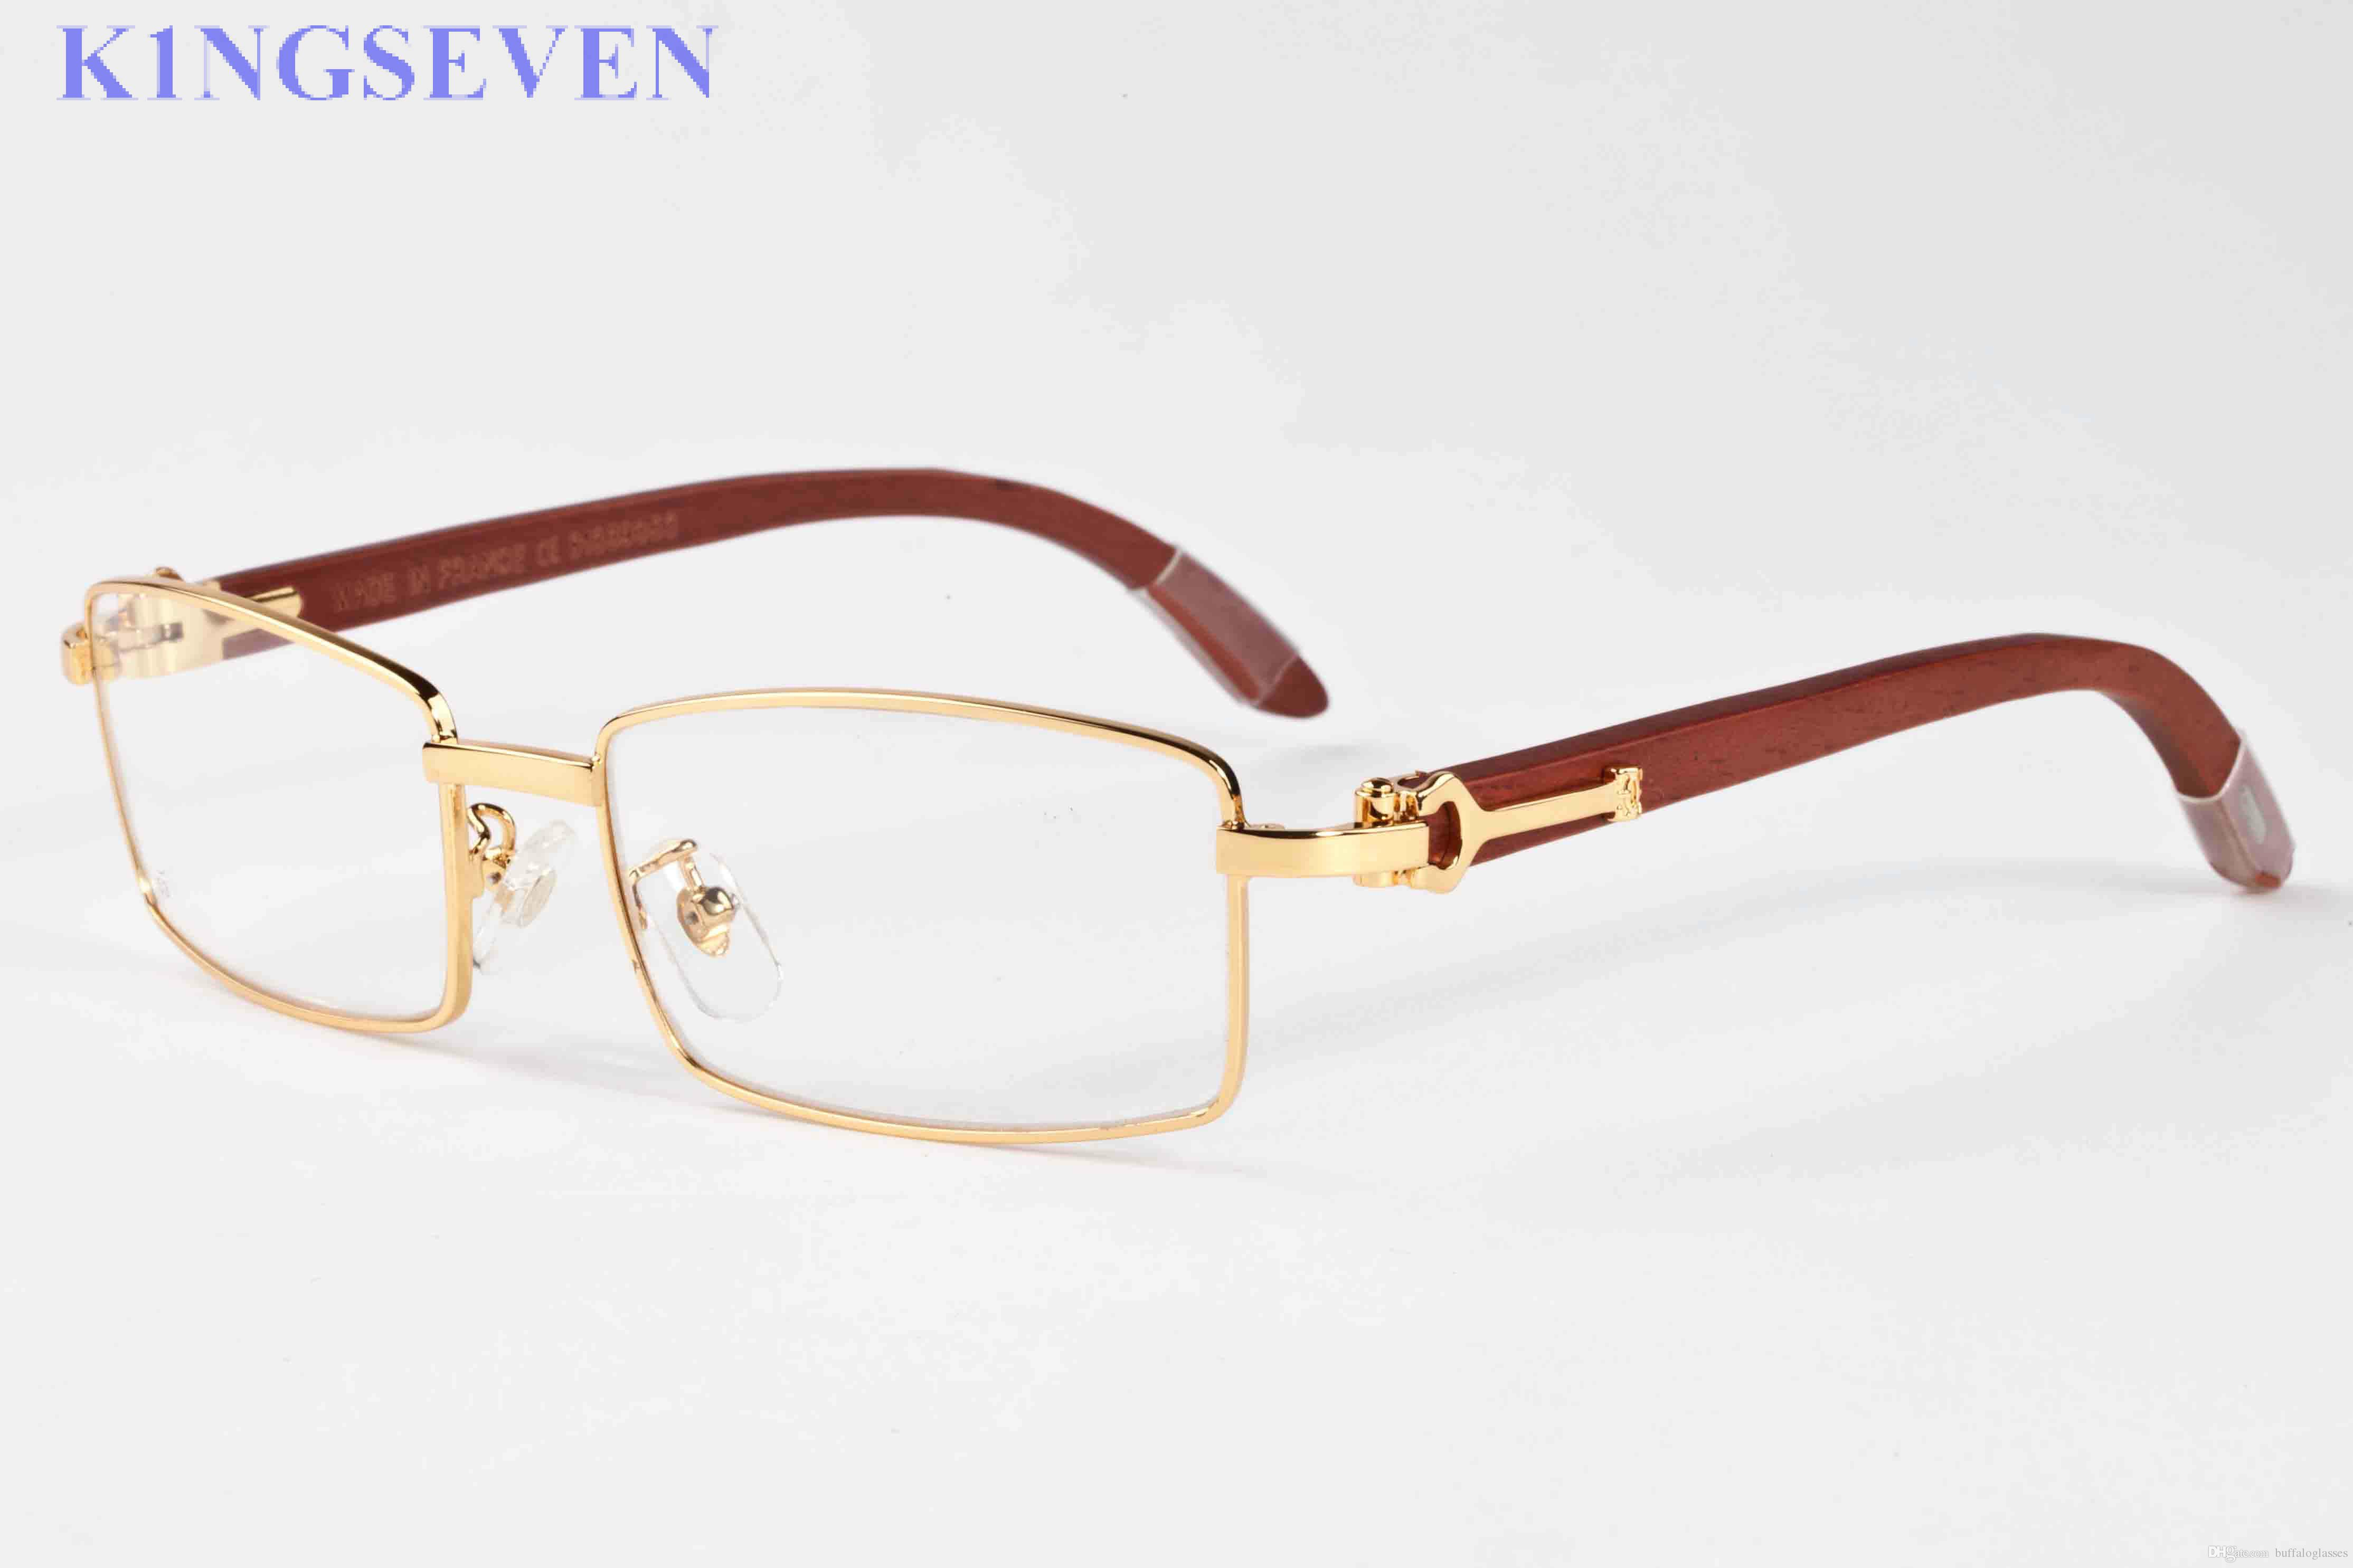 9be0f4b7b4d Top Quality Mens Designer Sunglasses 2017 Brand Luxury Sunglasses For Women  Full Rimless Gold Metal Frames Wood Sunglasses Spitfire Sunglasses Native  ...